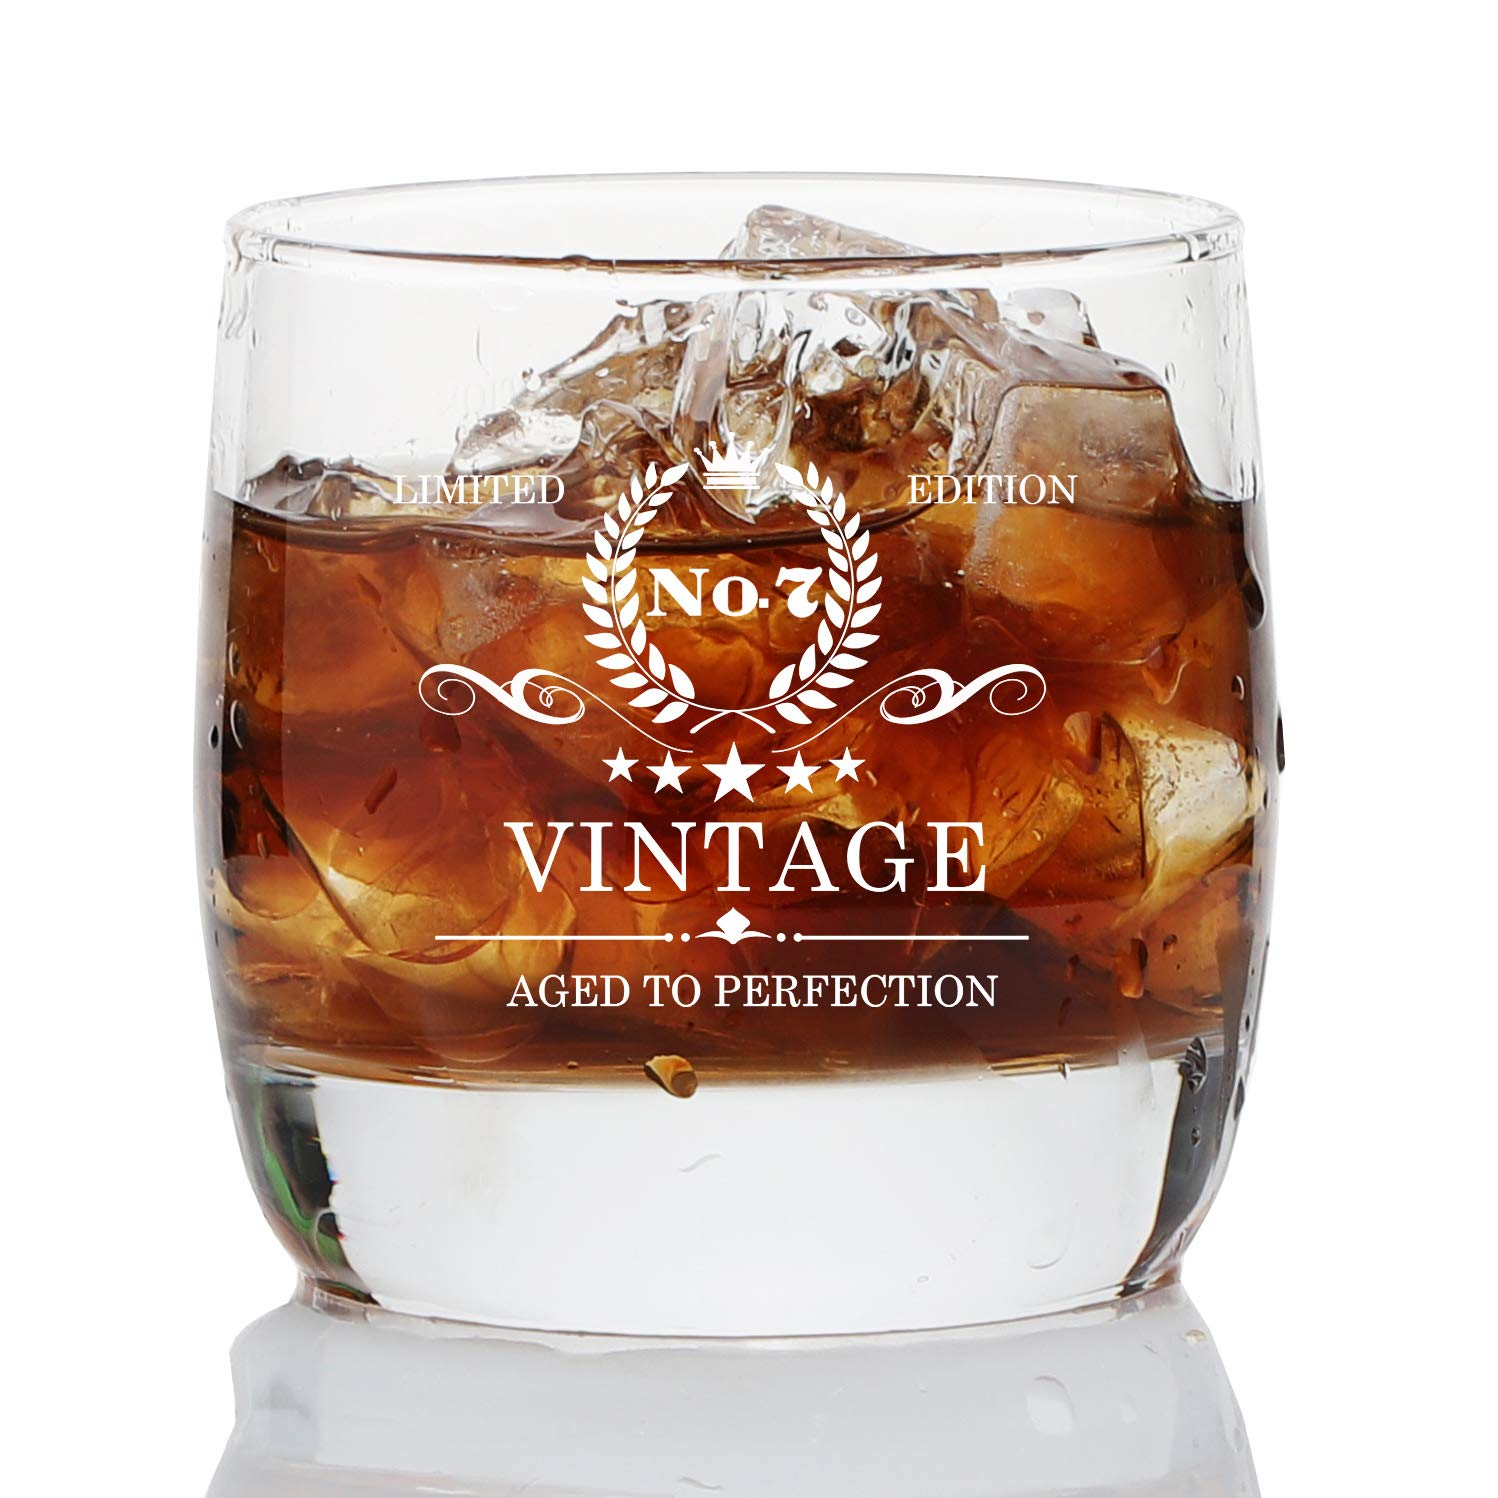 Very nice whiskey glass!